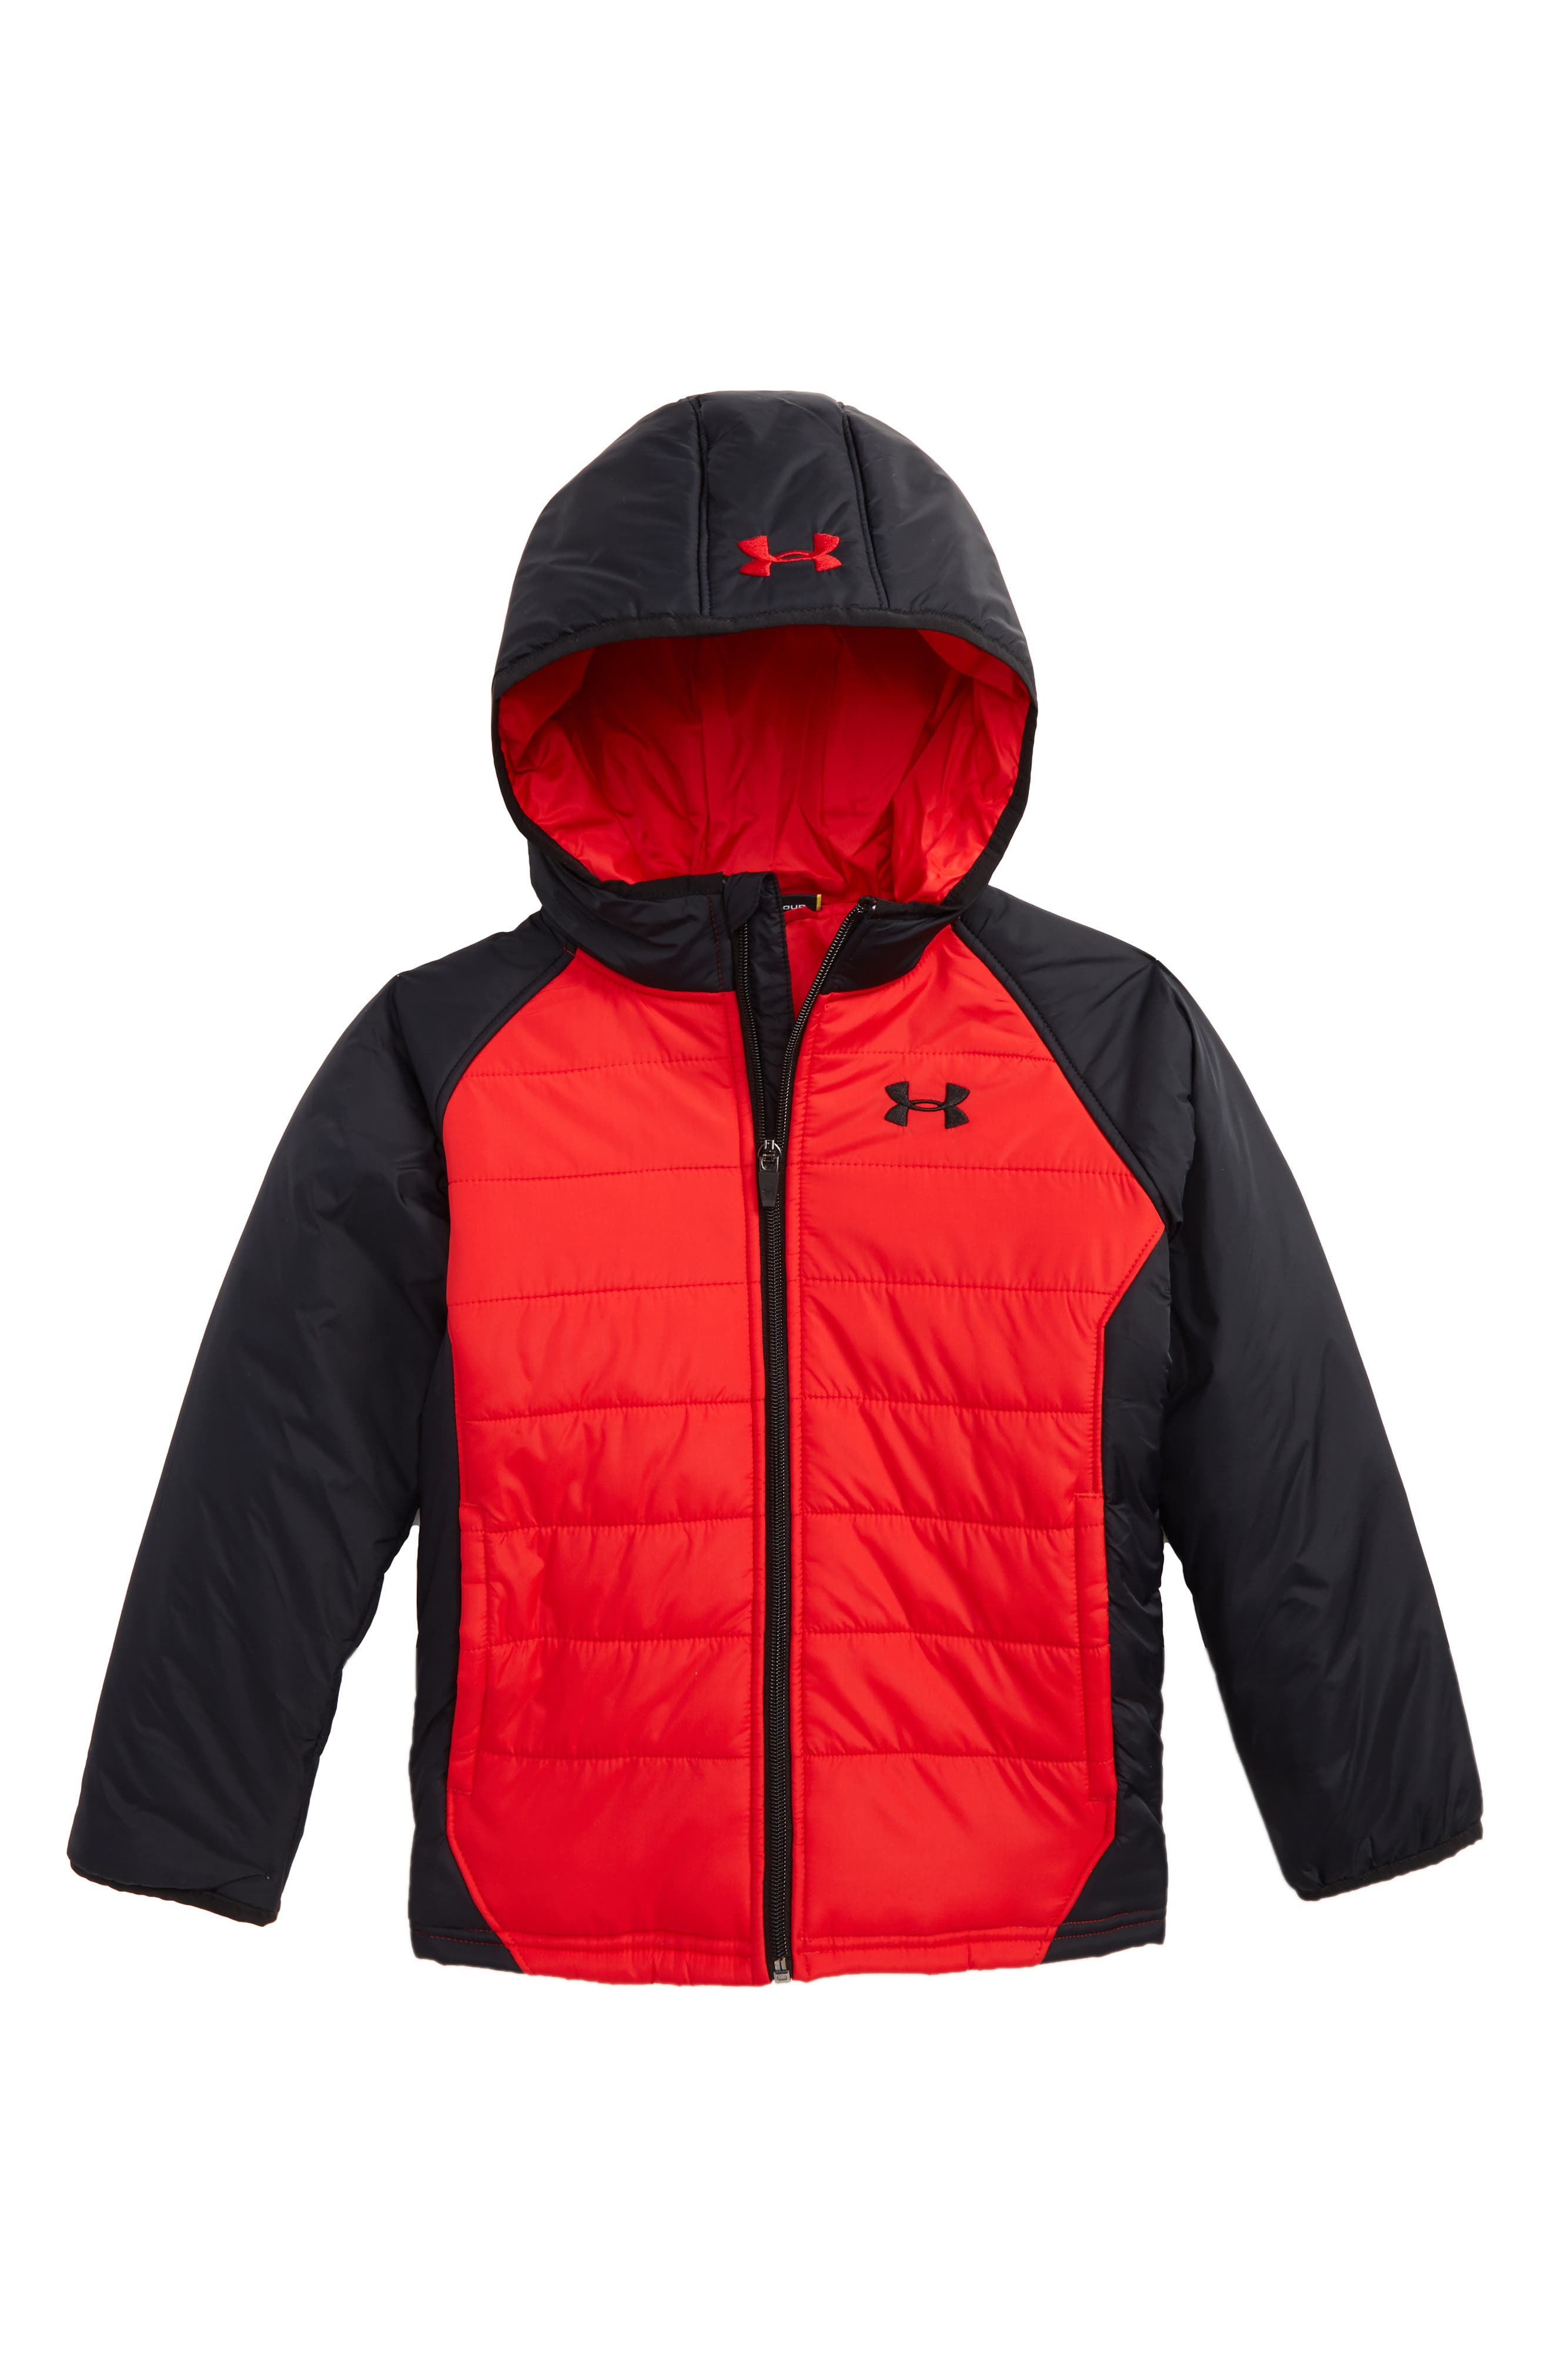 Alternate Image 1 Selected - Under Armour Werewolf Water Resistant ColdGear® Hooded Puffer Jacket (Toddler Boys & Little Boys)